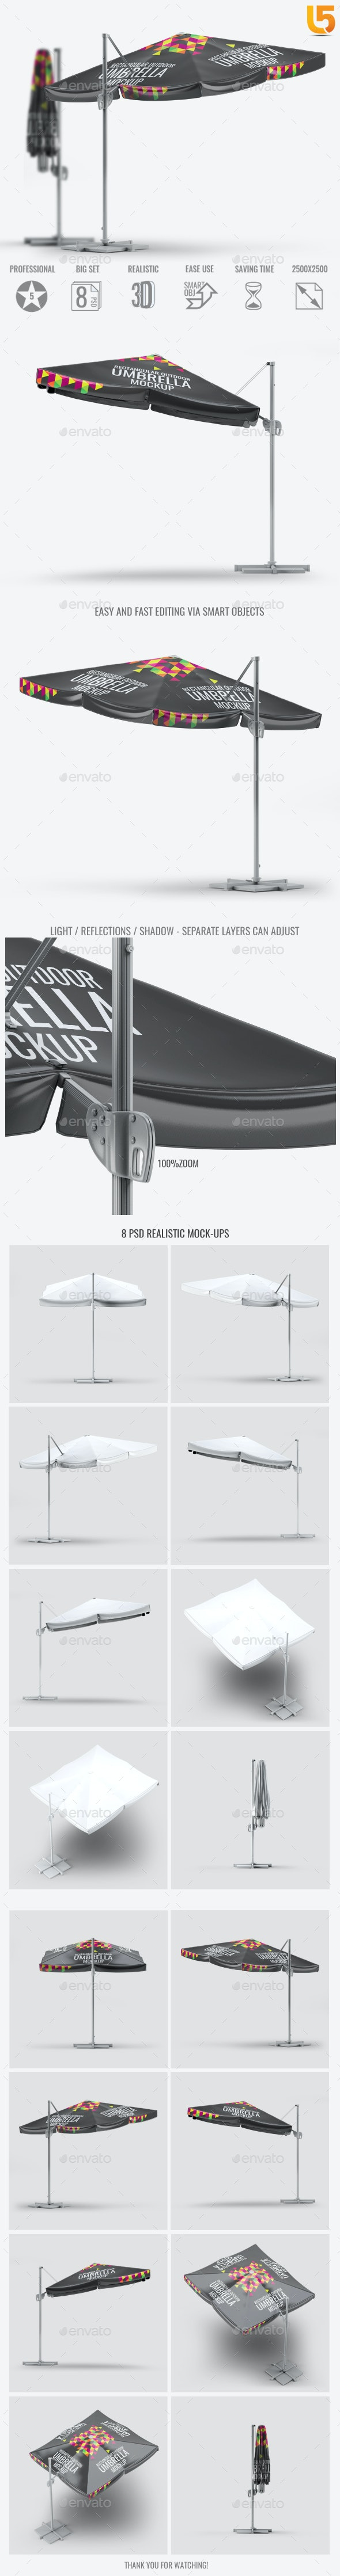 Rectangular Outdoor Umbrella Mock-Up - Miscellaneous Print